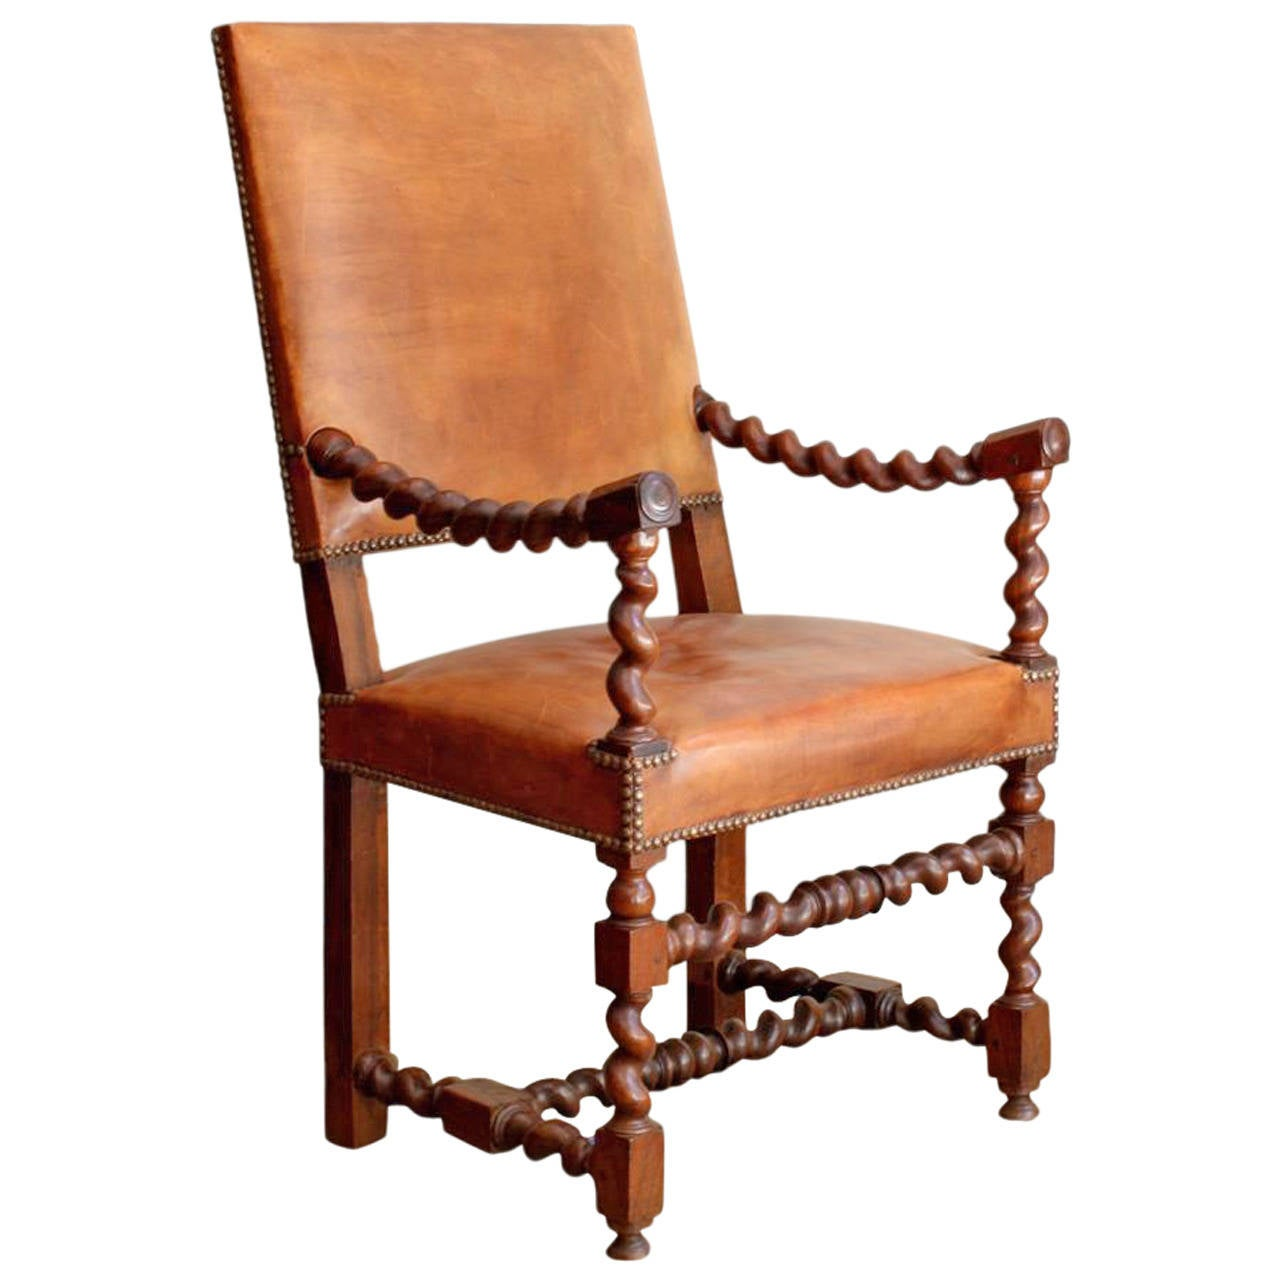 Unique Barley Twist Leather Chair At 1stdibs